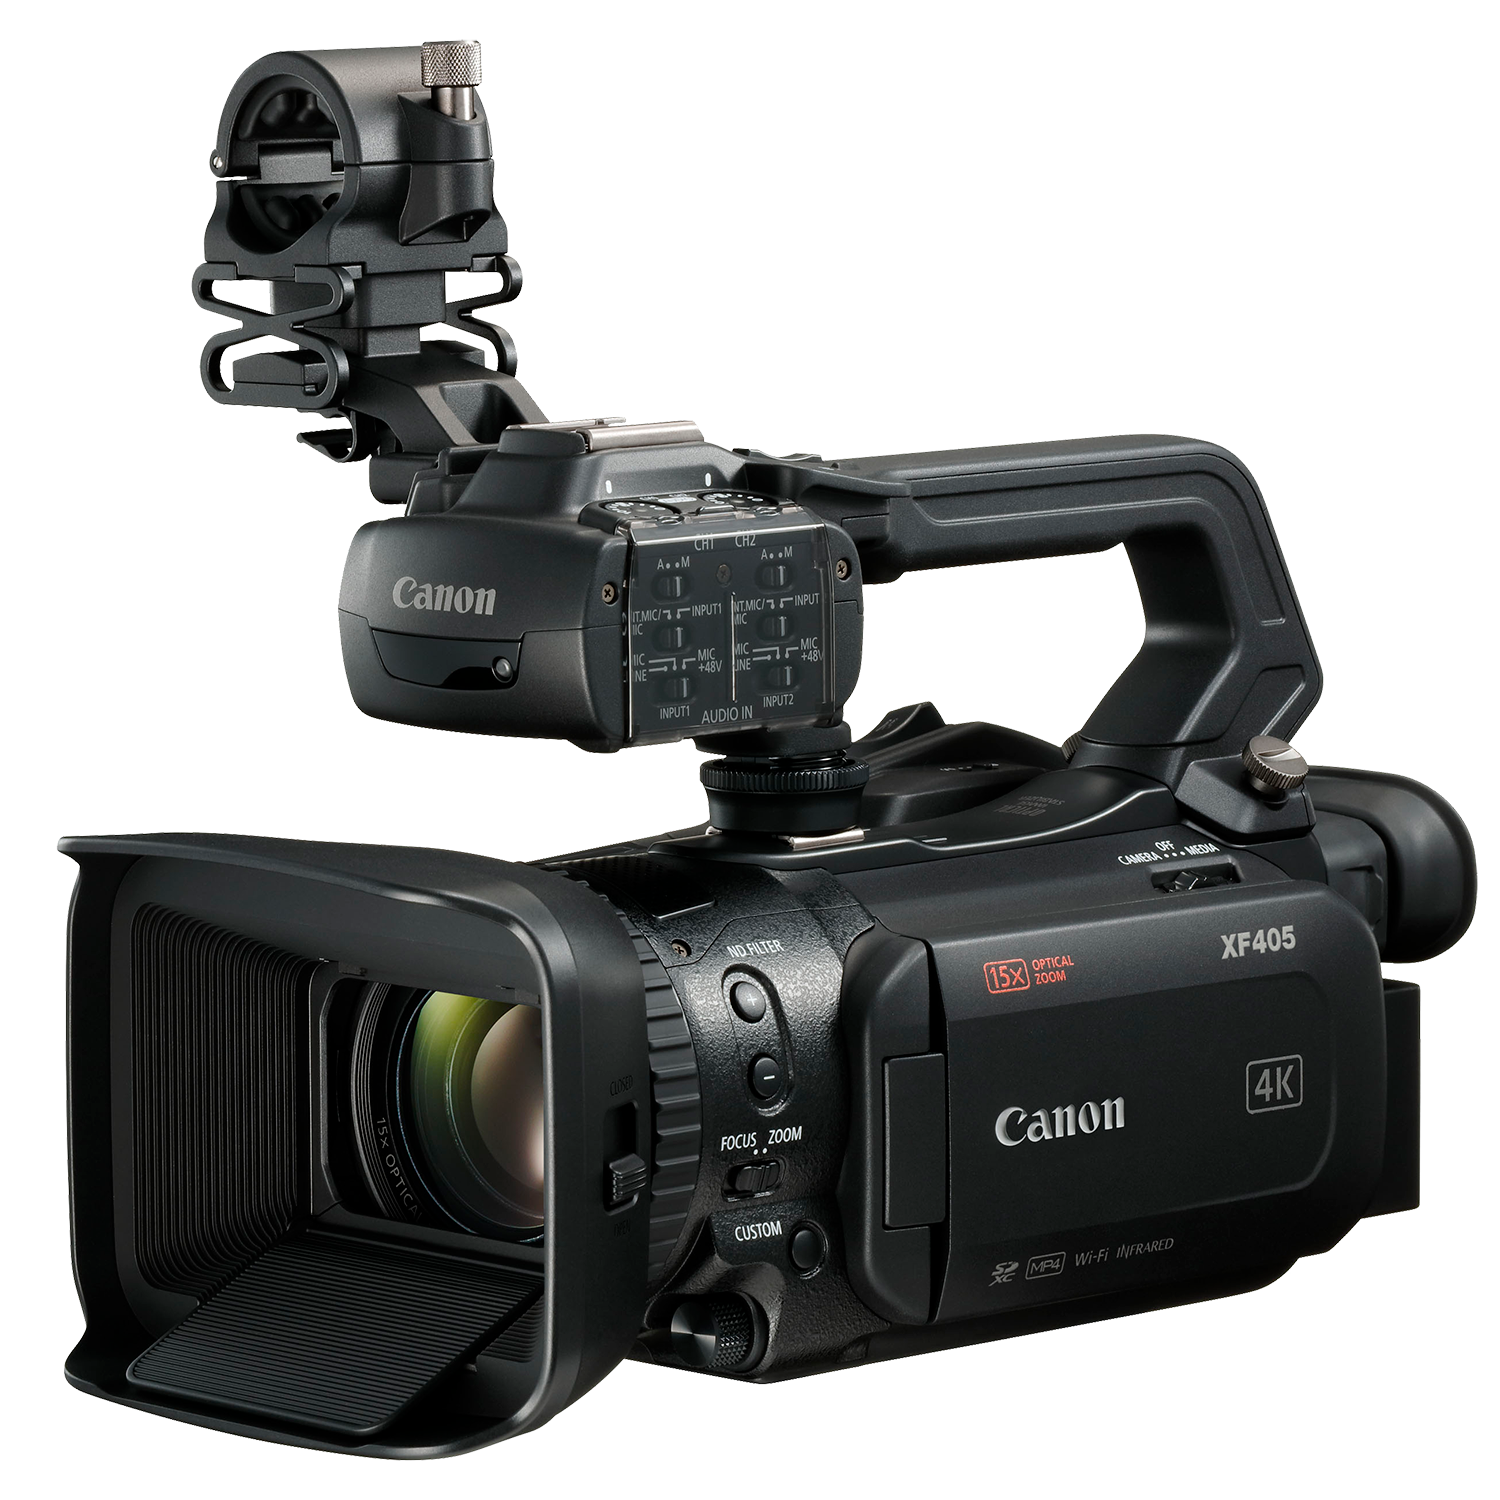 Now in stock! The Canon XF405